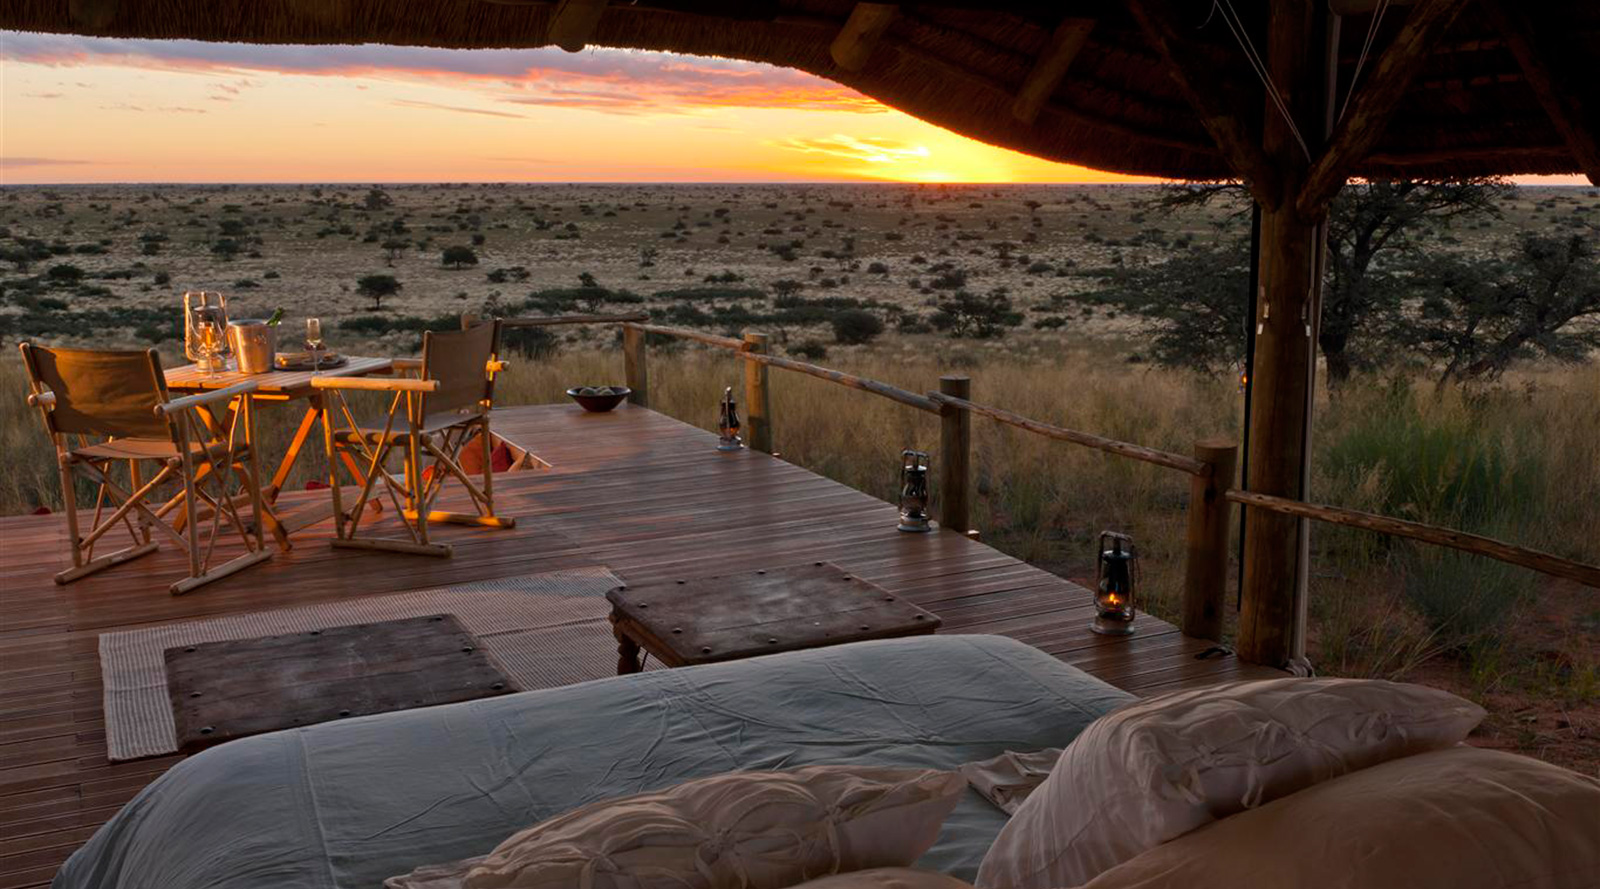 © Tswalu Kalahari | Tswalu Kalahari Private Game Reserve, South Africa